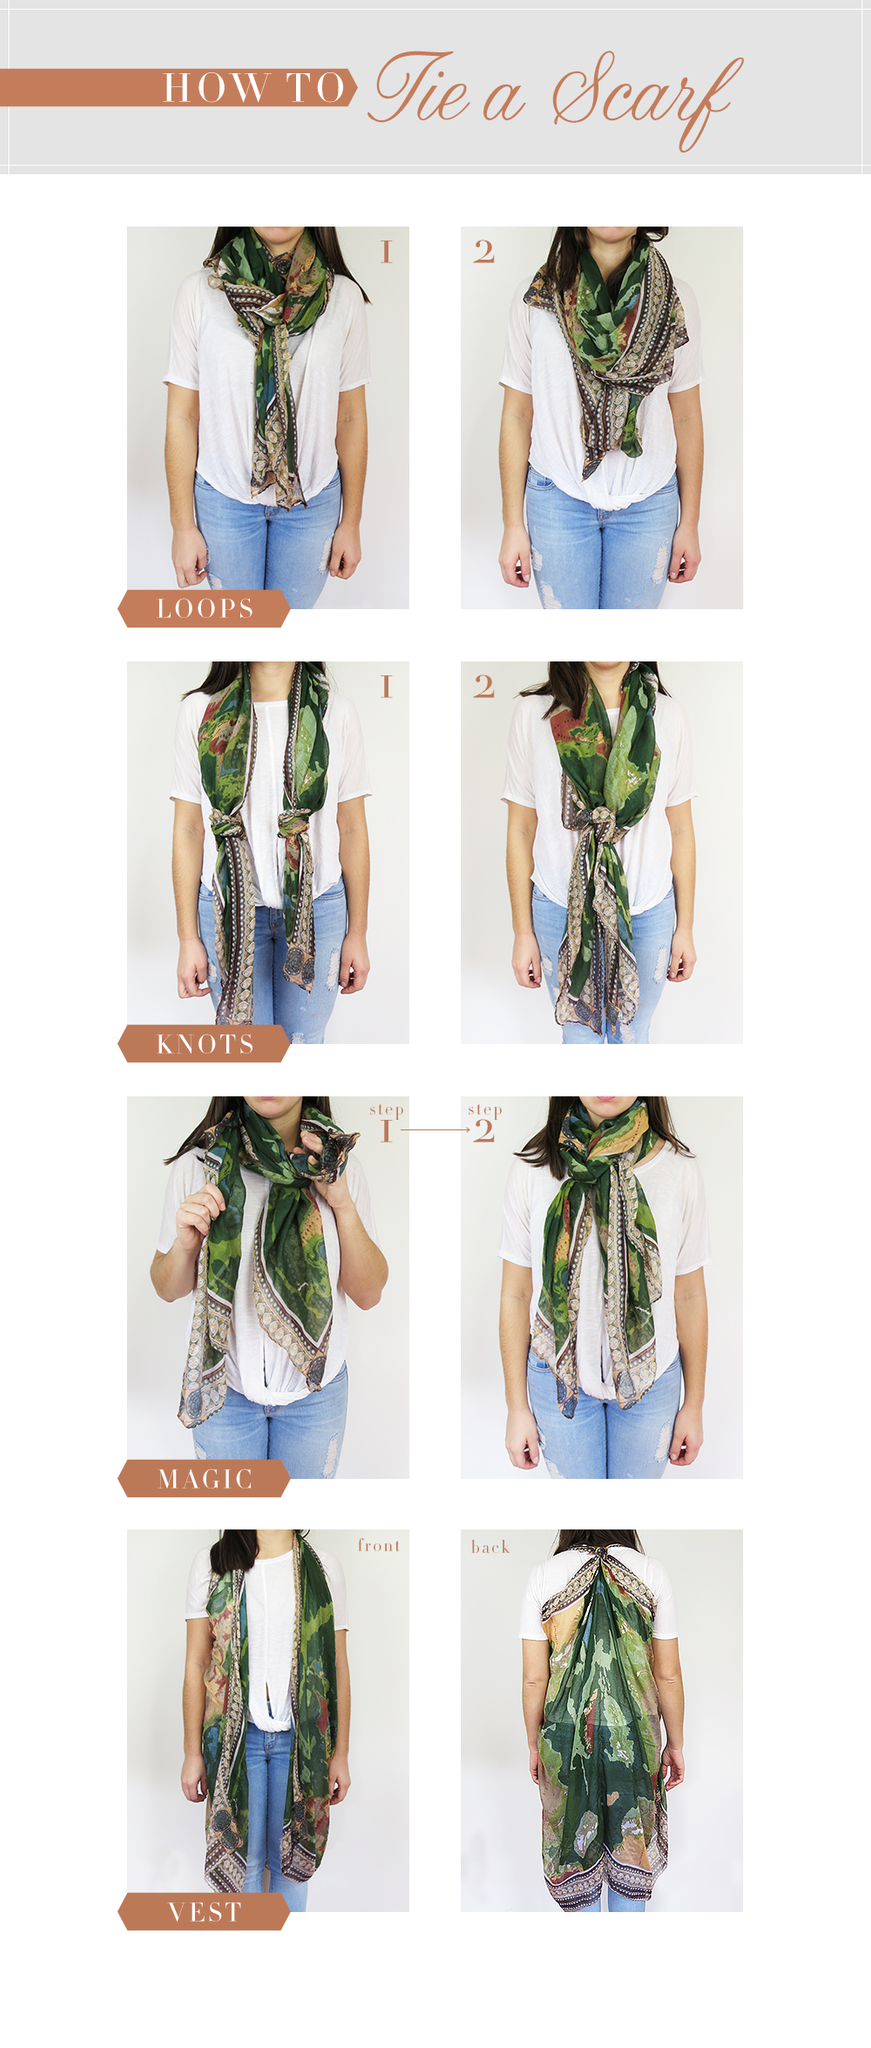 Tip For The Magic Loop: Wrap Scarf Around Your Neck So It Is Wrapped Fully  Around One Time And The Ends Hang Down On Either Side Put Your Hand Inside  The